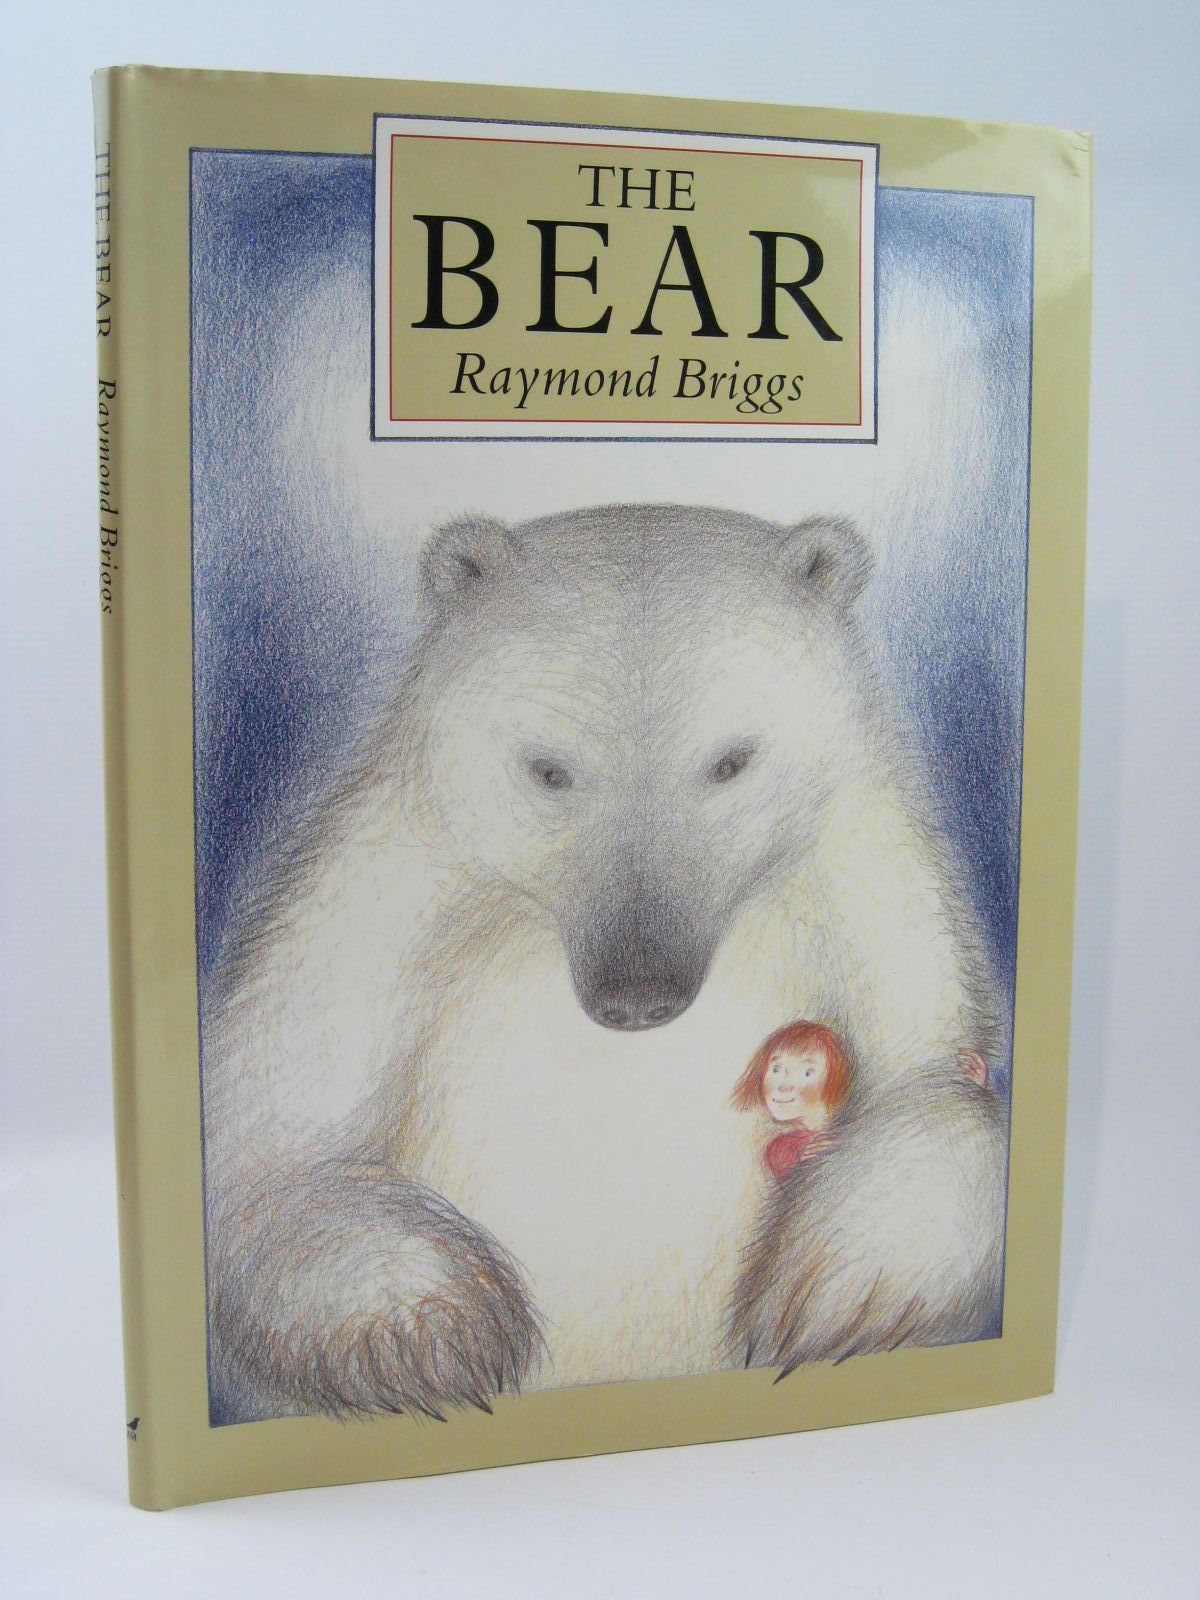 Photo of THE BEAR written by Briggs, Raymond illustrated by Briggs, Raymond published by Julia MacRae Books (STOCK CODE: 1406235)  for sale by Stella & Rose's Books